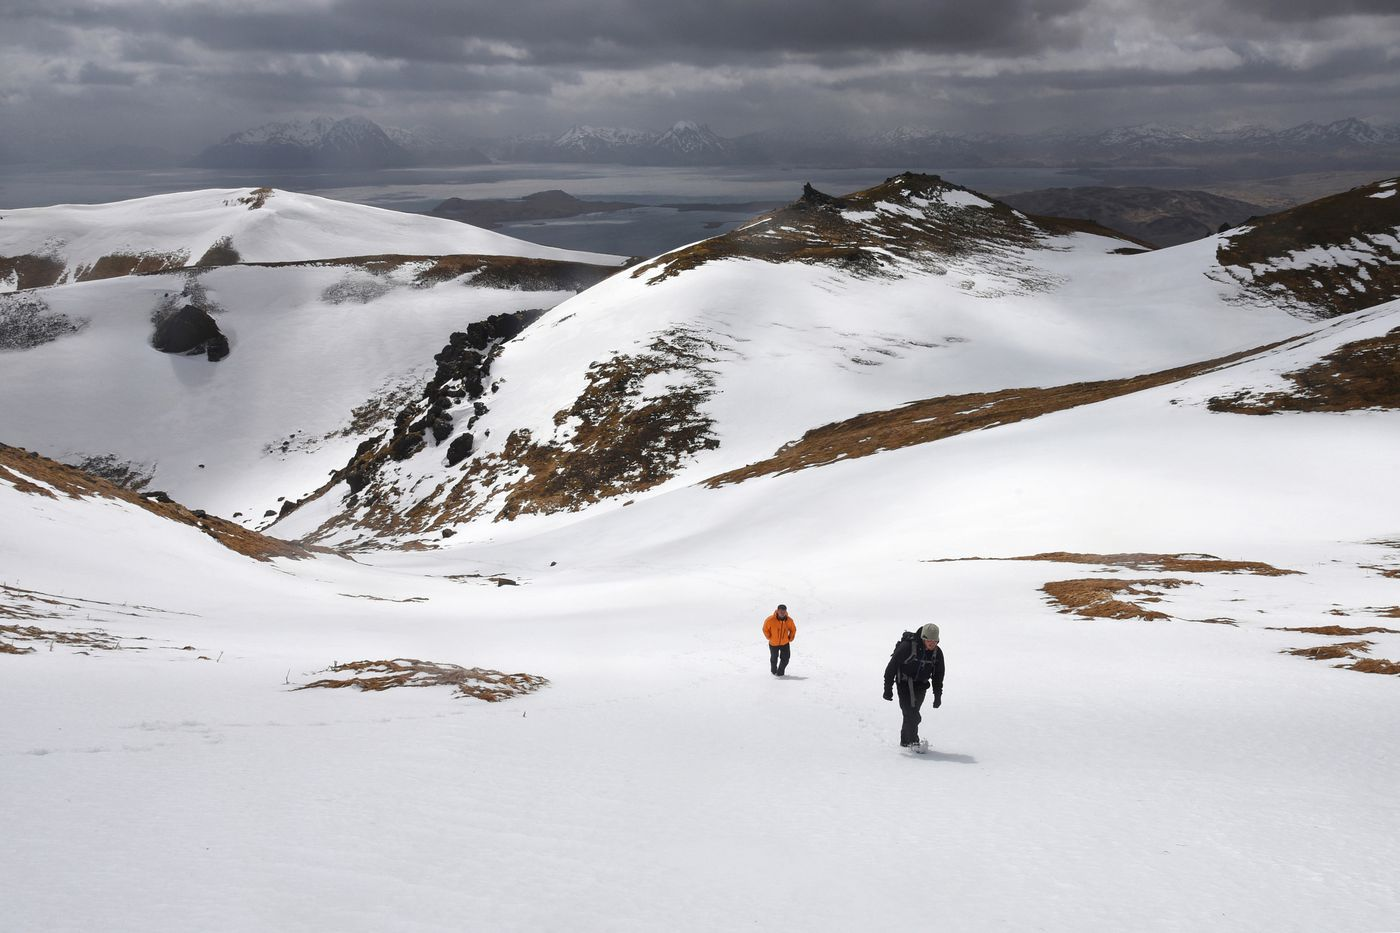 Cale Green and Michael Dickerson climbing 2,001-foot Mount Adagdak, on the northern tip of Adak Island. Photographed April 30, 2019. (Paxson Woelber)